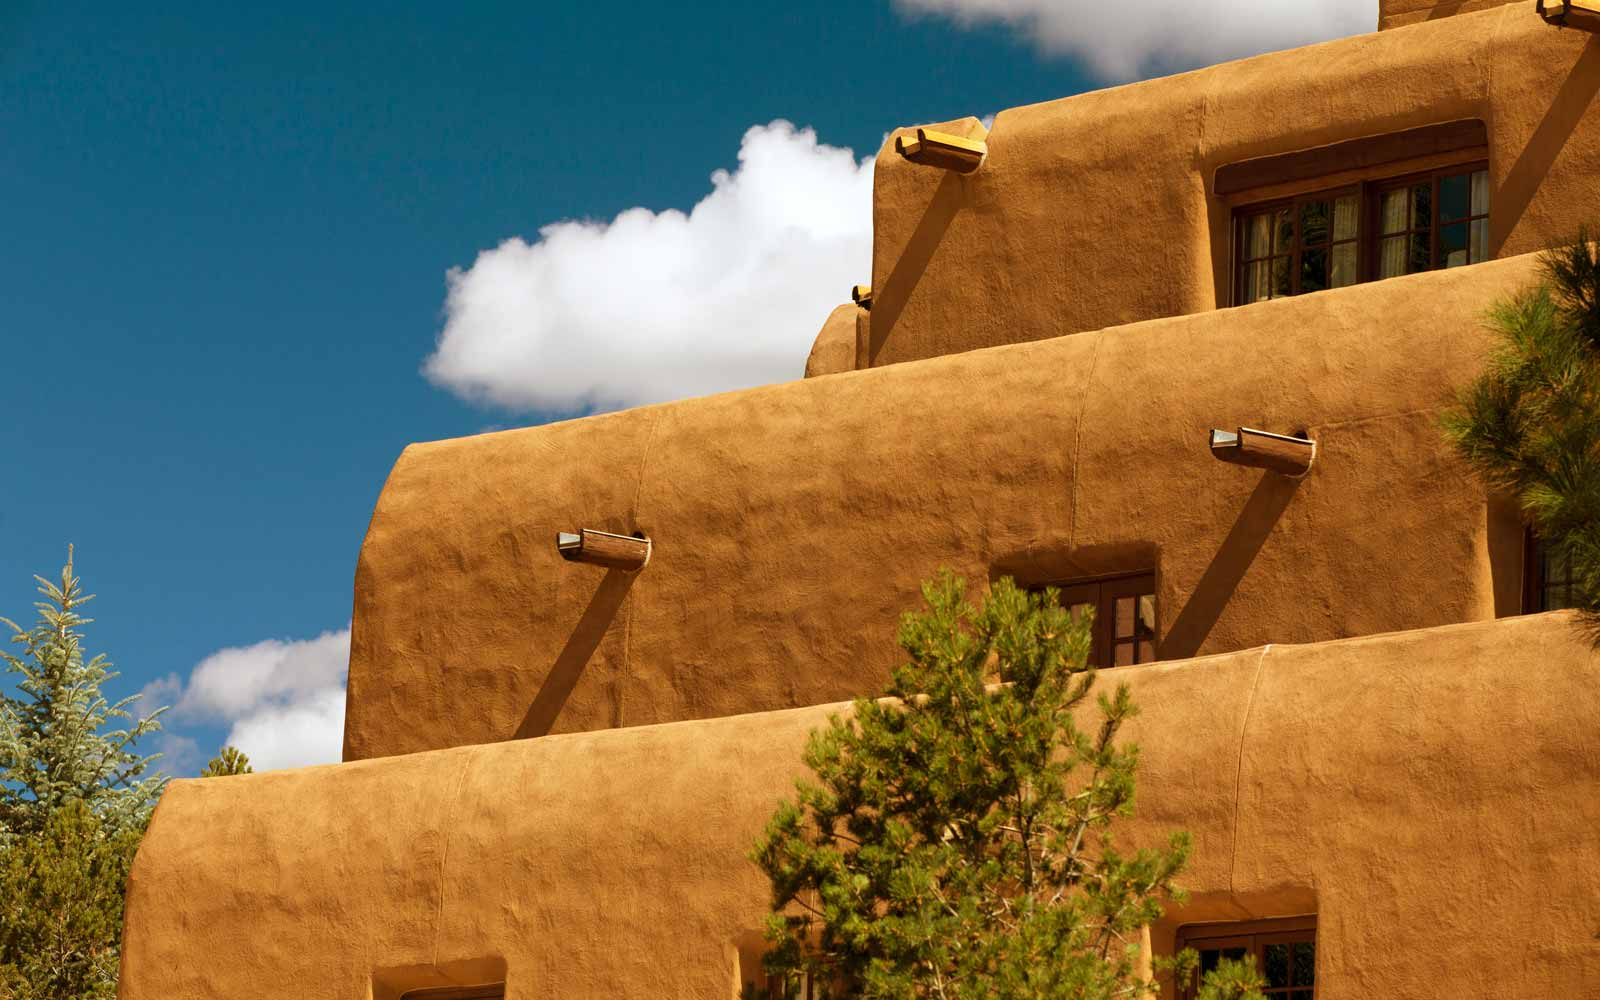 Santa Fe, New Mexico Buildings